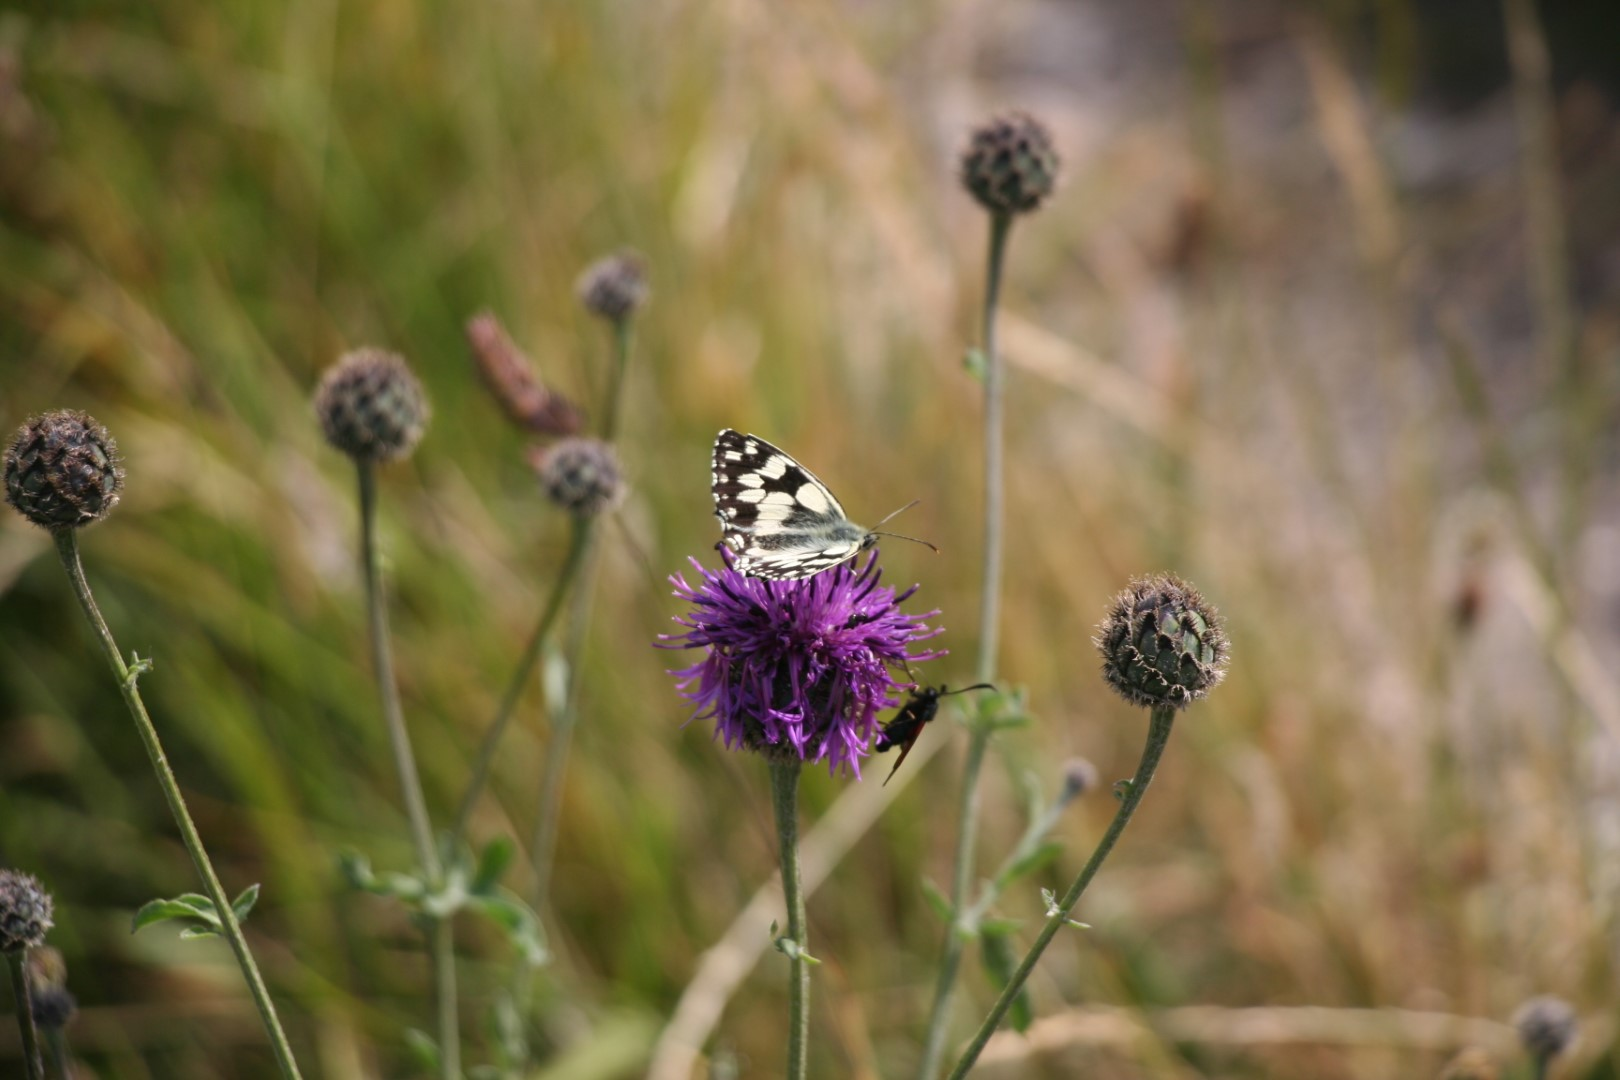 Greater knapweed - Centaurea scabiosa and Marbled White butterfly